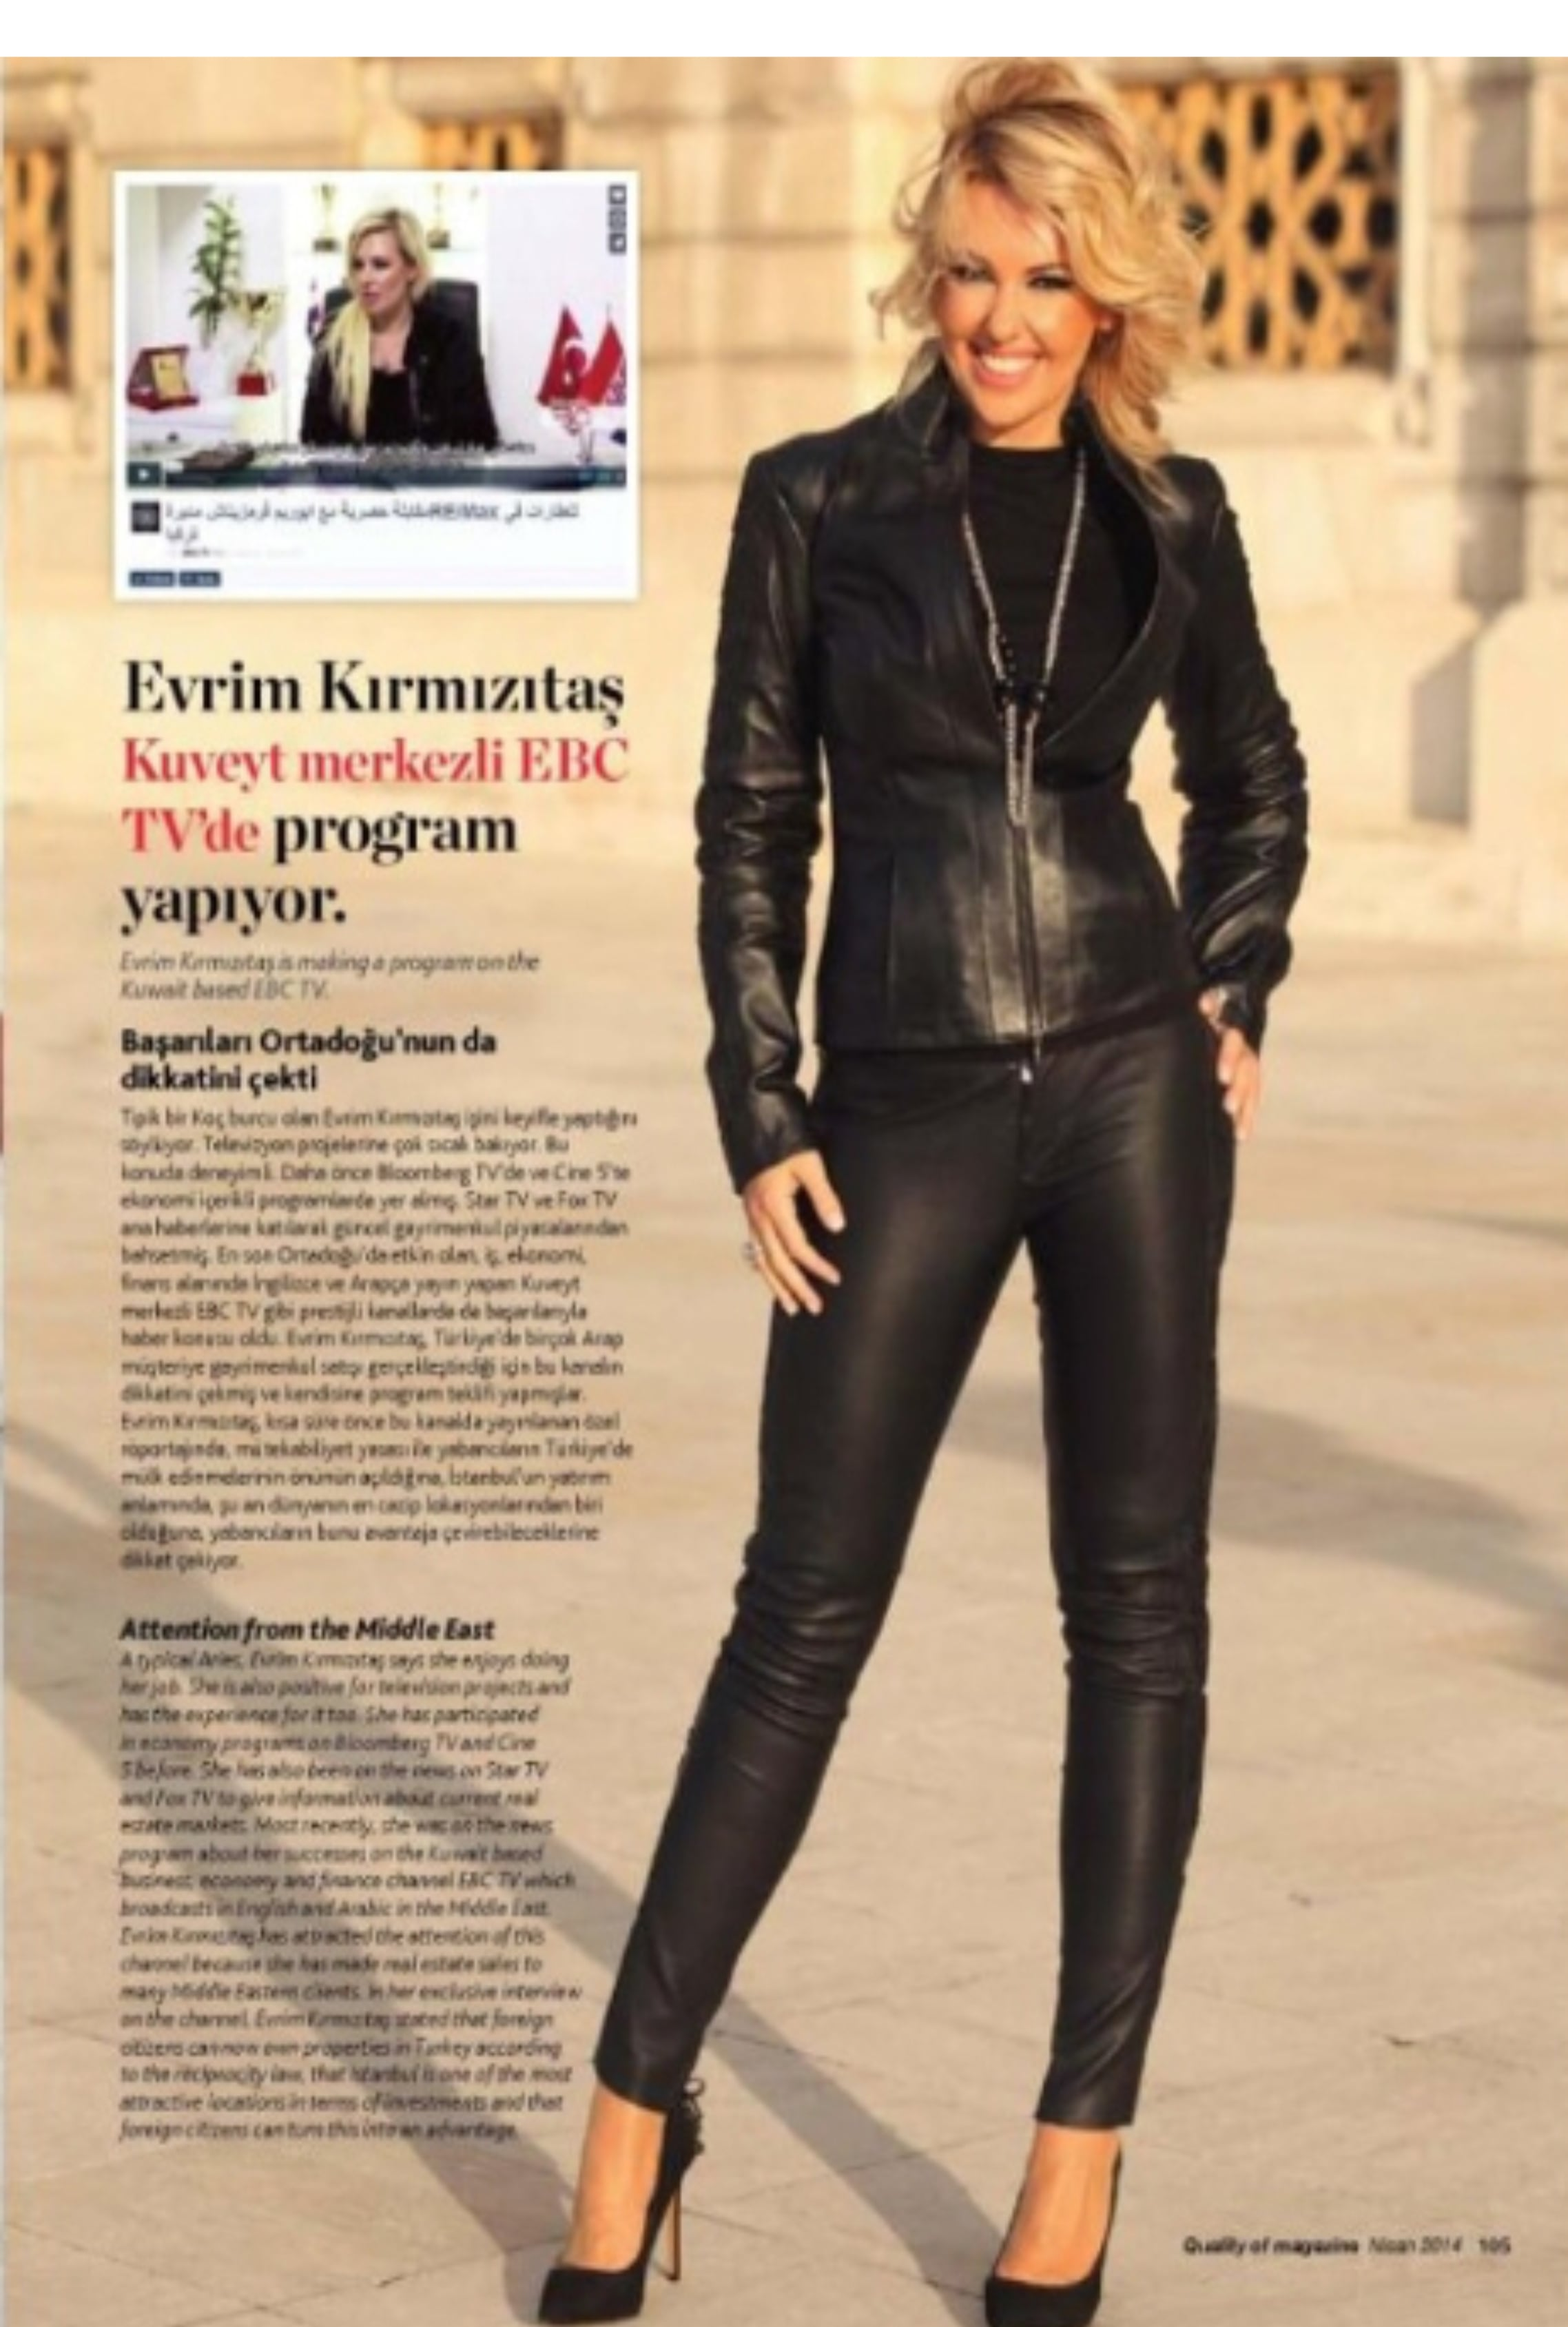 Quality of Magazine Dergisi, Nisan 2014